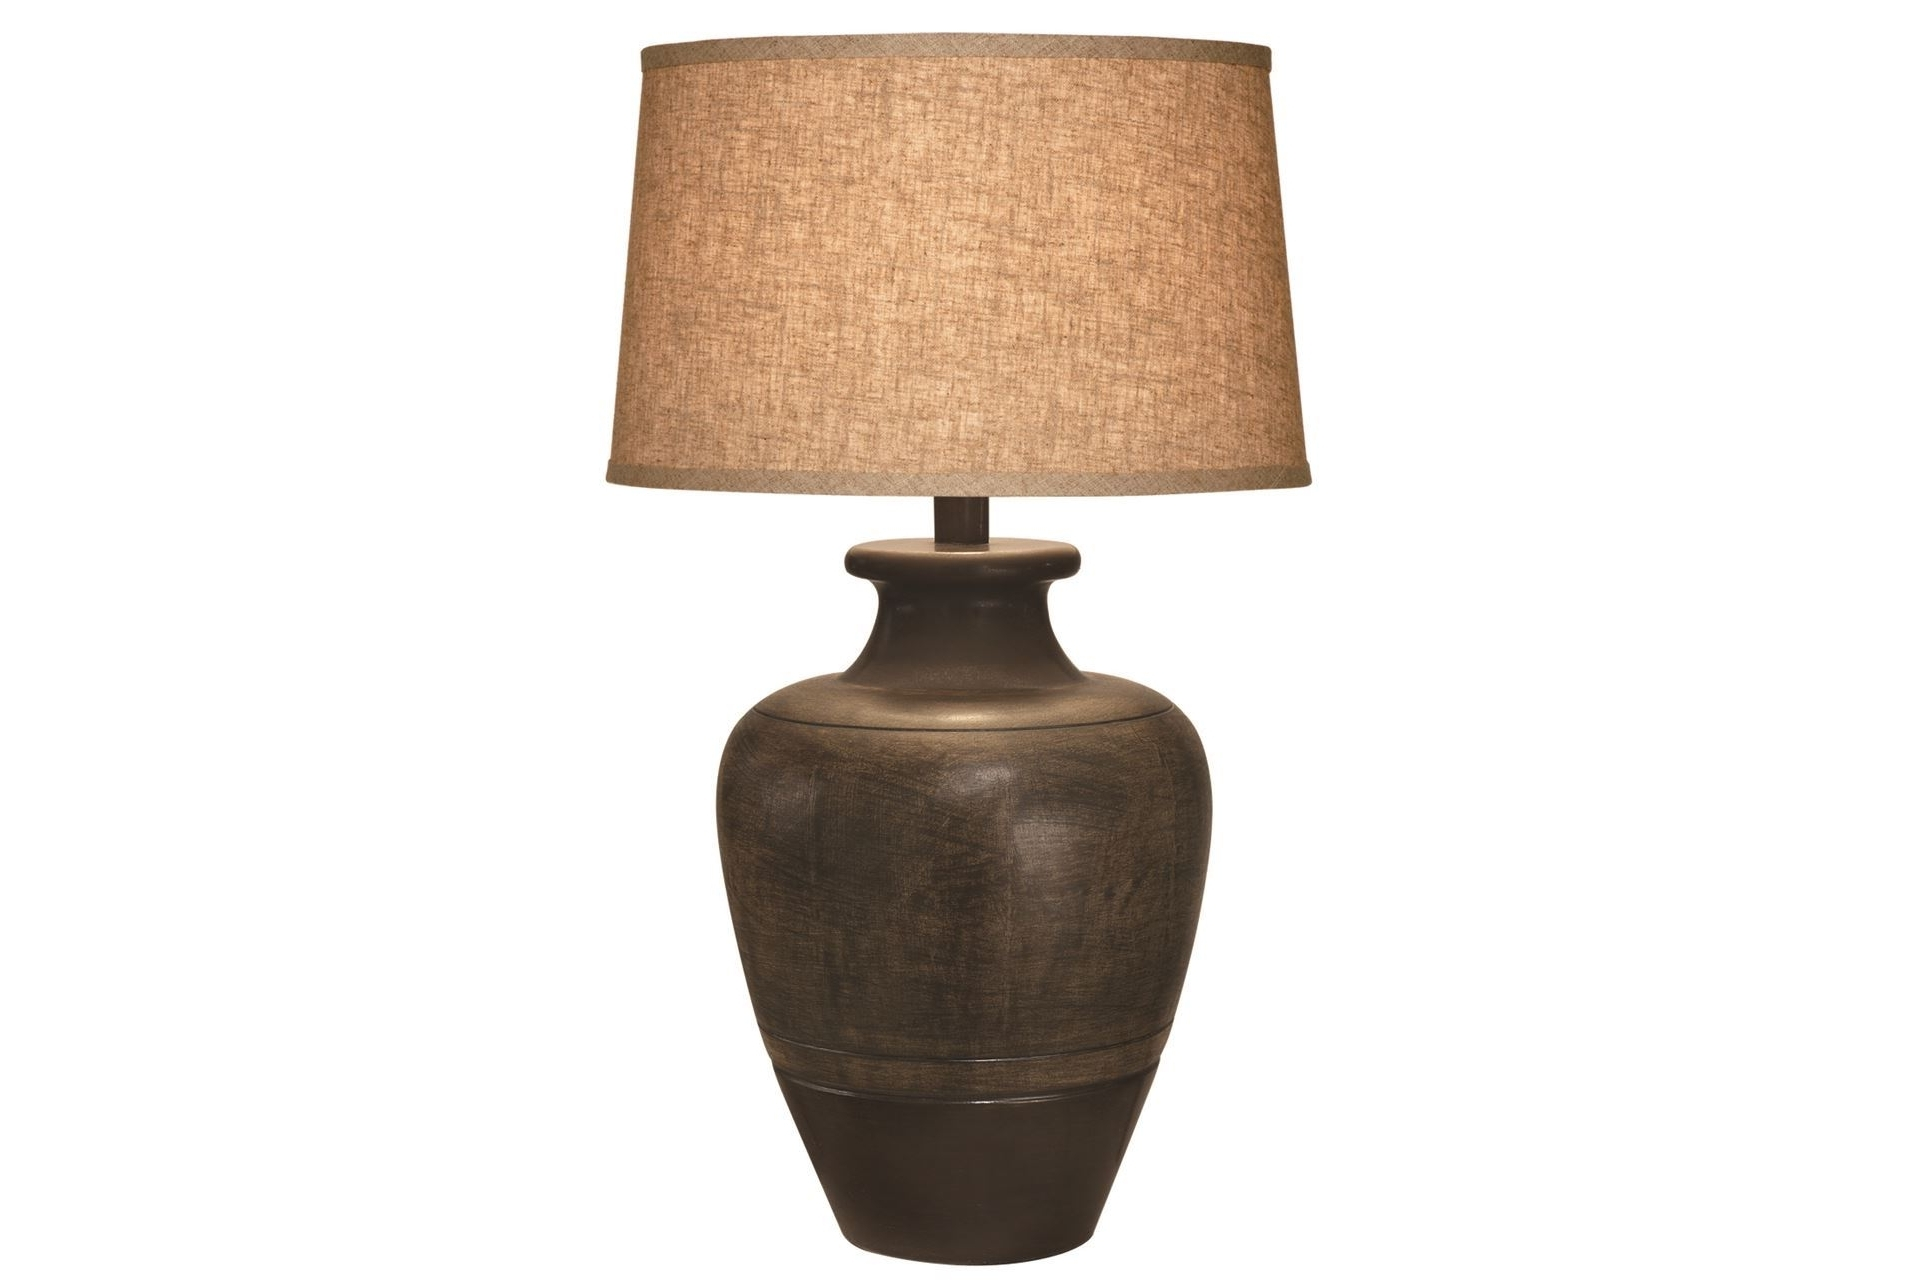 2018 Bronze Living Room Table Lamps With Regard To Bronze Table Lamps For Living Room – Living Room Decorating Design (View 2 of 15)